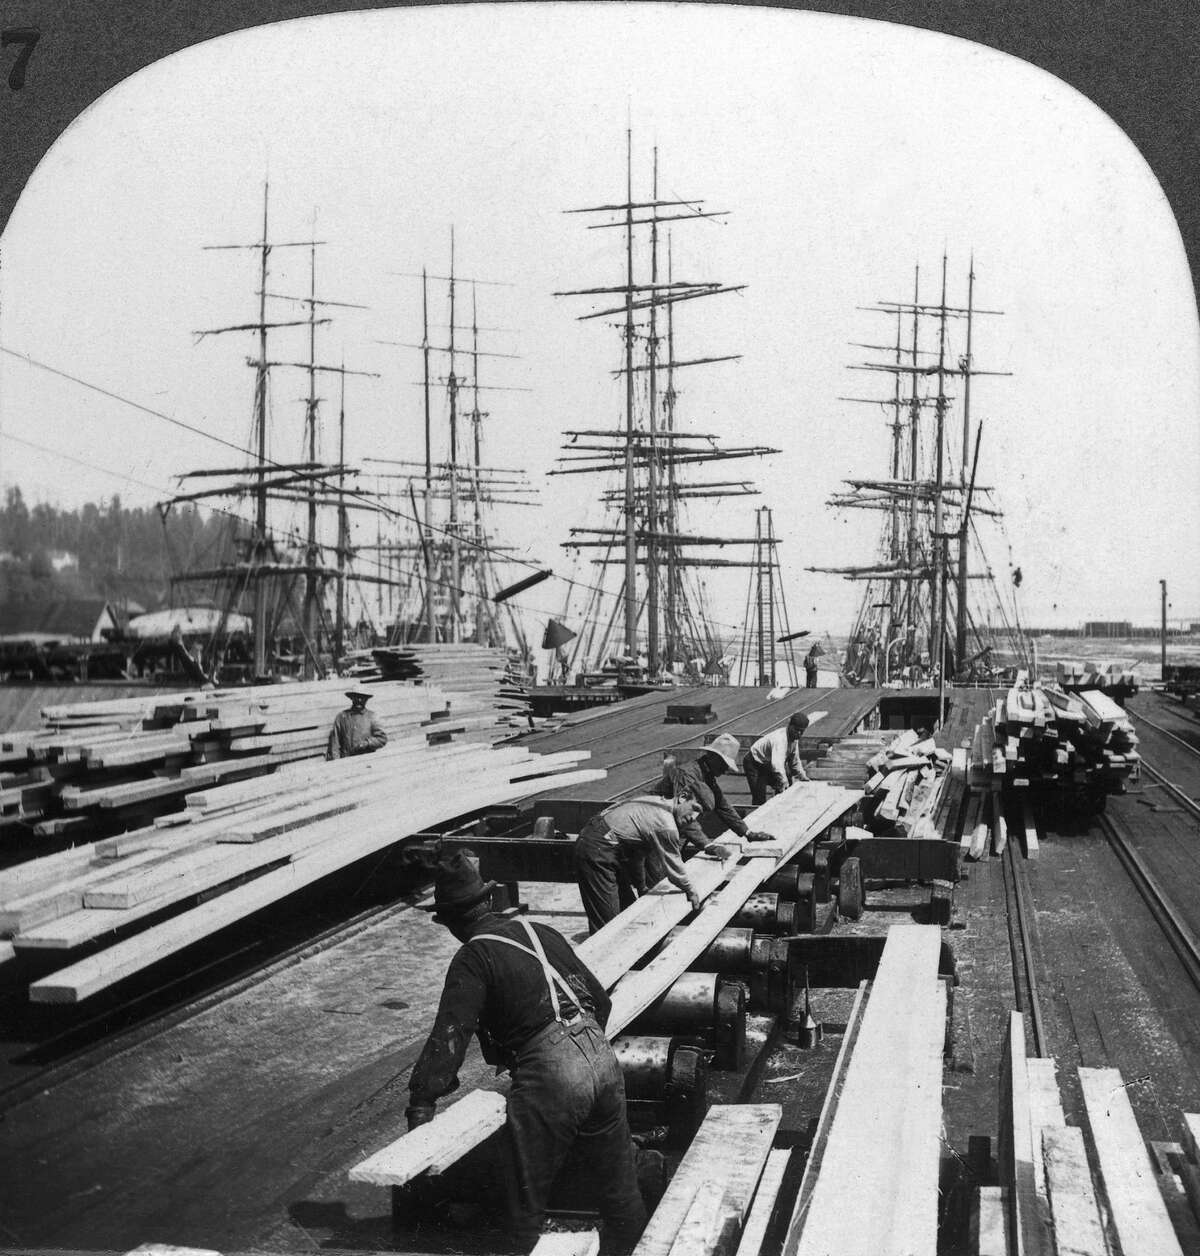 UNITED STATES - JANUARY 01: Loading of wooden planks in Blakely harbour near Seattle, Washington (U.S.), on three-masted boats, around 1900-1930. The quay is equipped with electrical lighting, as the picture shows. The wood, which came from Washington and Oregon's forests, was sent everywhere in the world: South Africa, South America, Japan, etc. (Photo by Keystone-France/Gamma-Keystone via Getty Images)